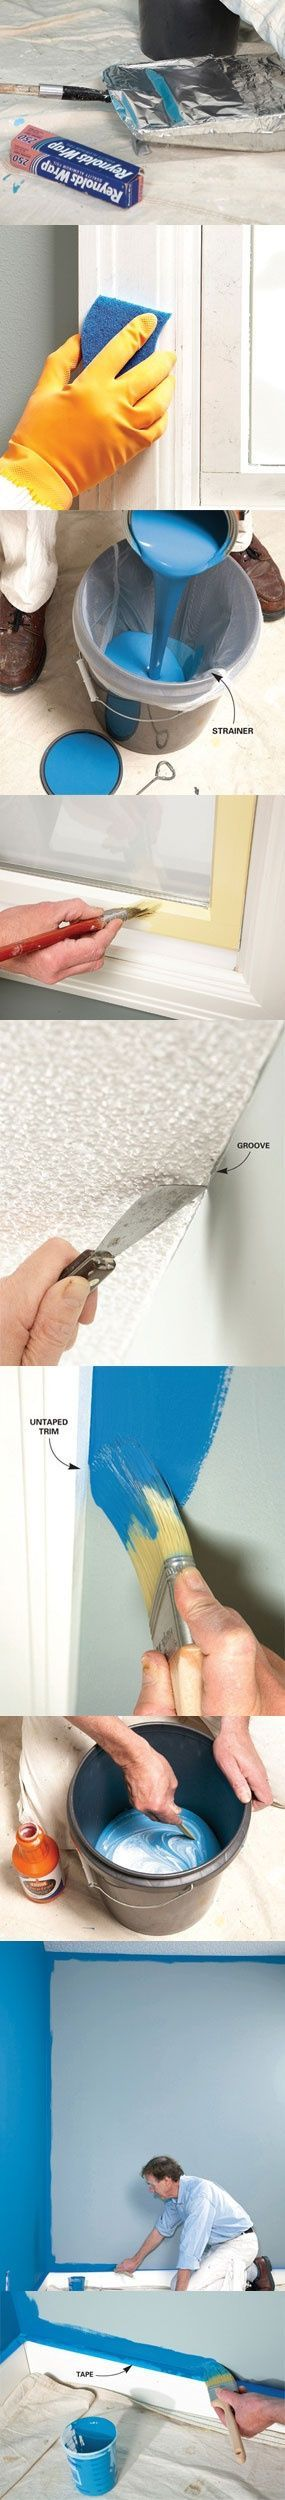 A veteran painting contractor shares his secrets for painting walls fast, yet producing first-rate results. You can easily master these techniques too, and get a professional-looking finish. Learn these and the fastest way to cover walls at